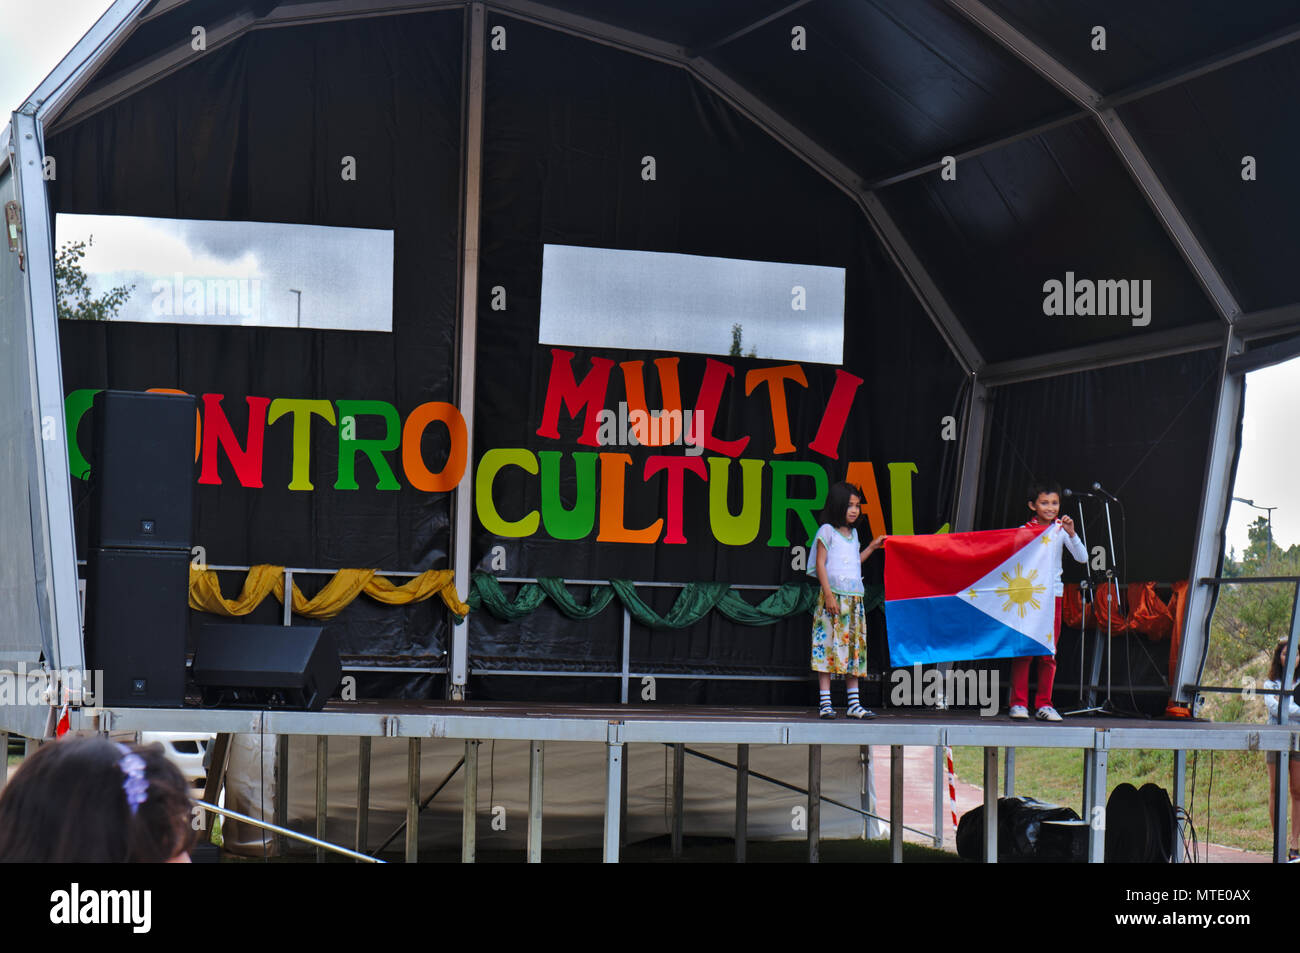 IV Encontro (multiculturelle) rencontre multiculturelle à Albufeira, Algarve, Portugal. 25 mai, 2018 Photo Stock